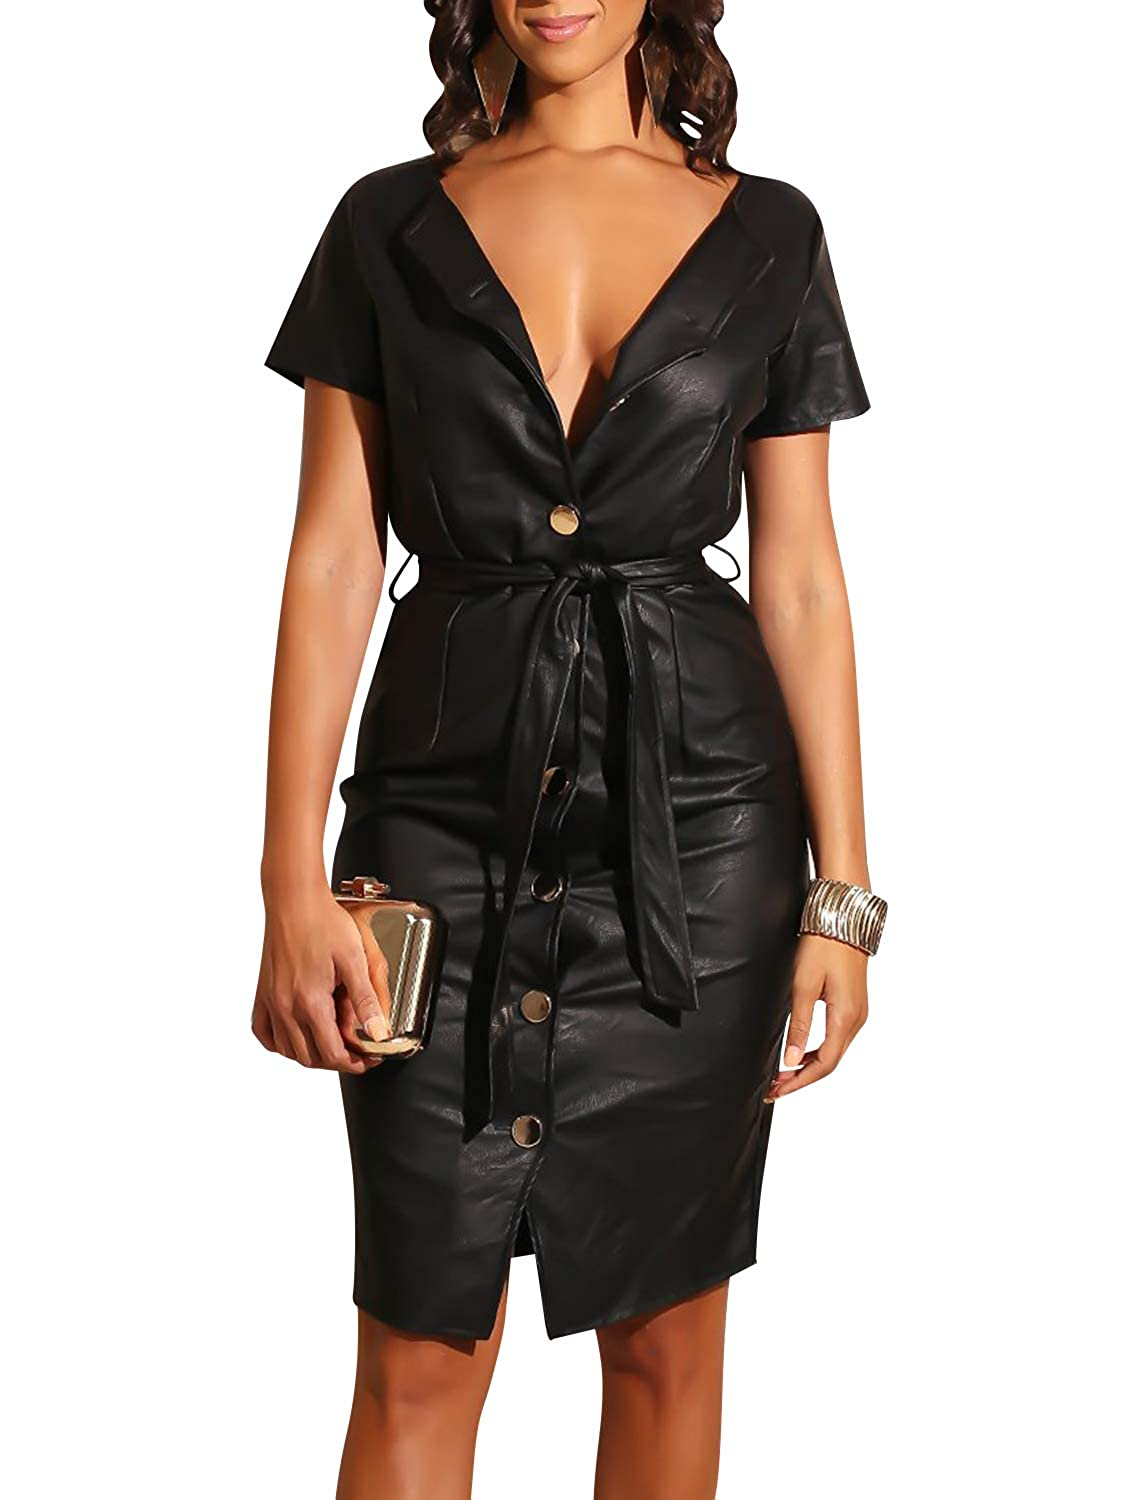 62ce6de68f5 Glamaker Women s Faux Leather Button Down Party Dress Short Sleeve Bodycon  V Neck Dress with Belt at Amazon Women s Clothing store